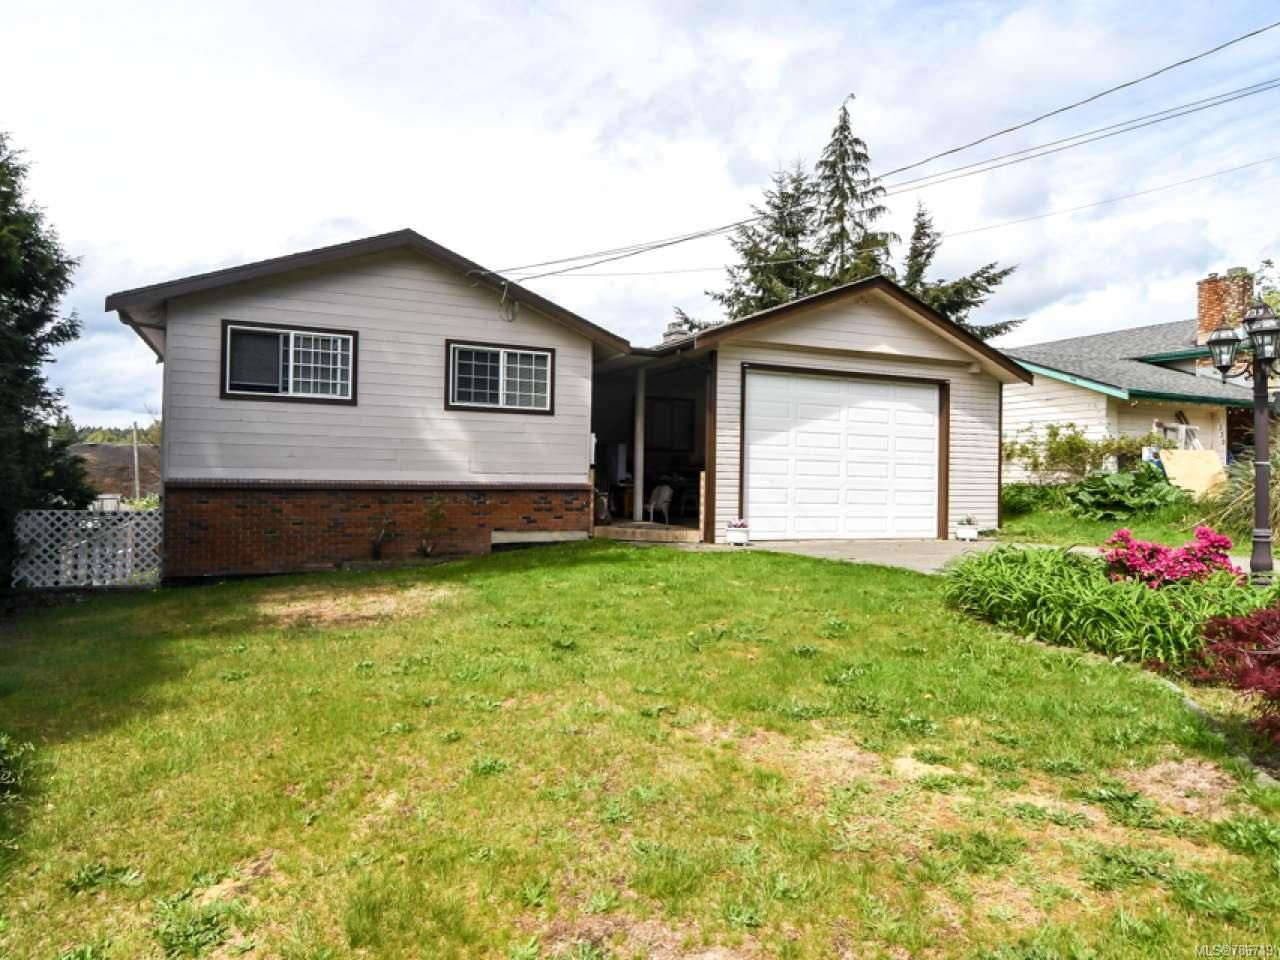 Photo 3: Photos: 1234 Denis Rd in CAMPBELL RIVER: CR Campbell River Central House for sale (Campbell River)  : MLS®# 786719